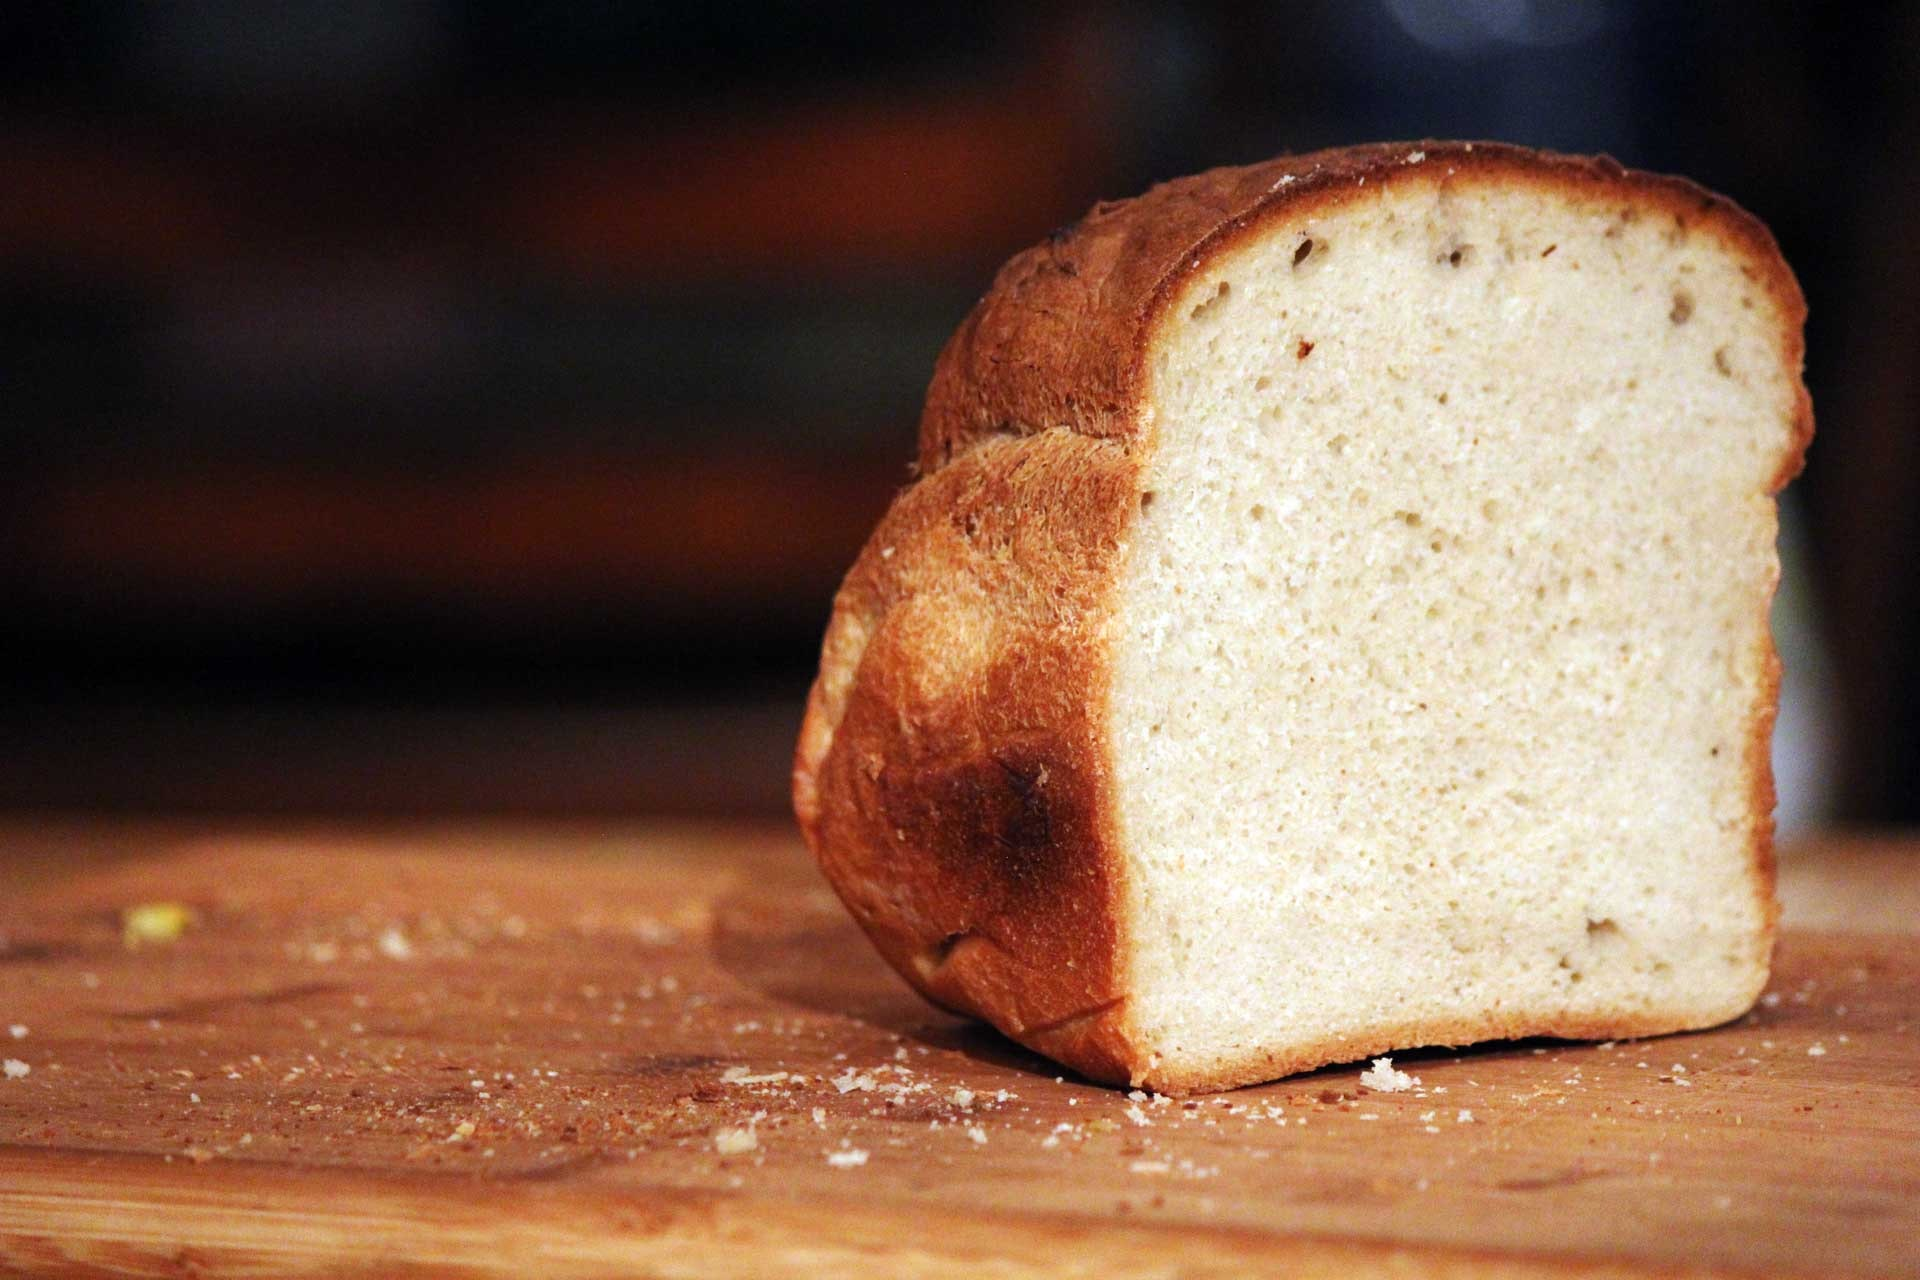 baked-goods-bread-delicious-957508.jpg